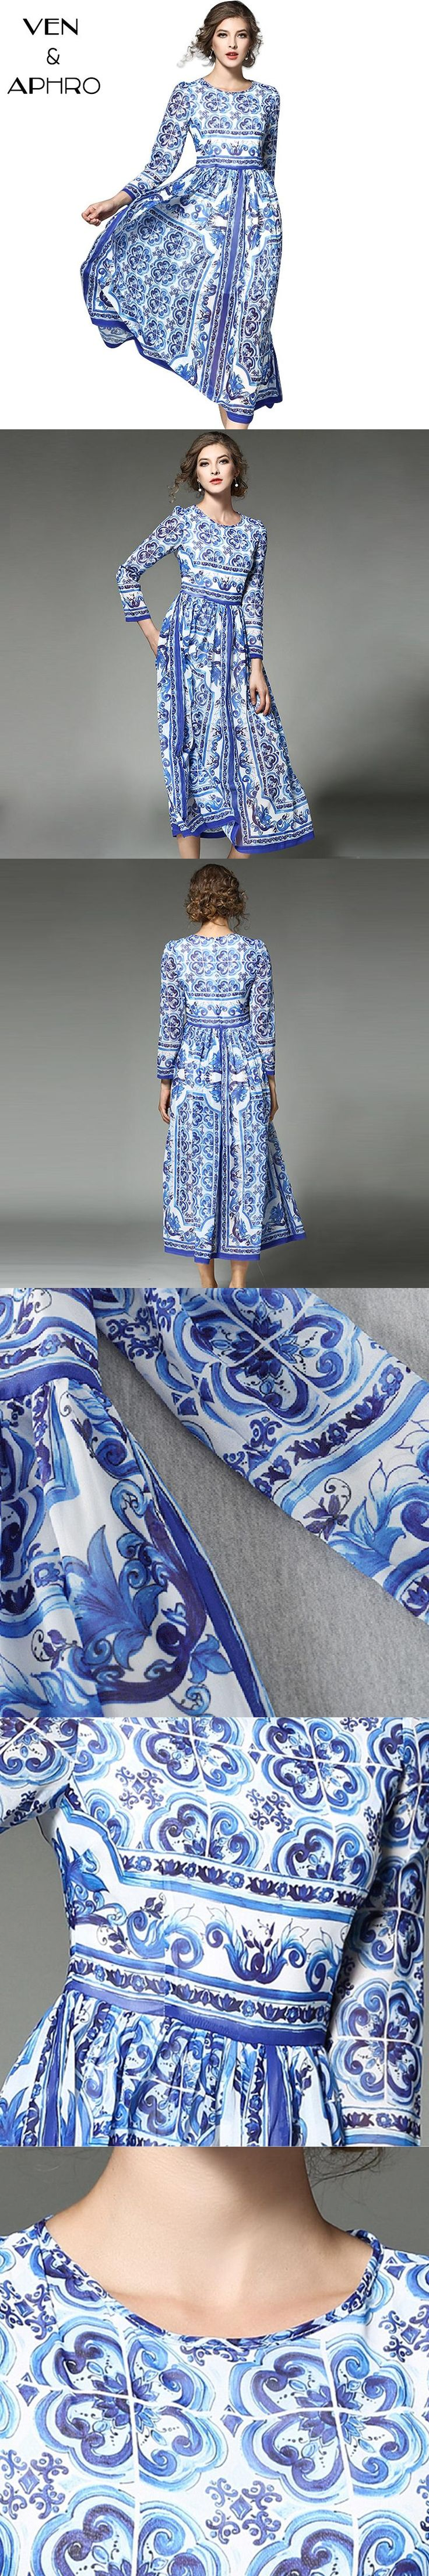 VA 2017 Women Maxi Dress Long Porcelain Print Dress Plus Size Silk Elegant Fashion Beach Bohemian Dresses vestidos W00850